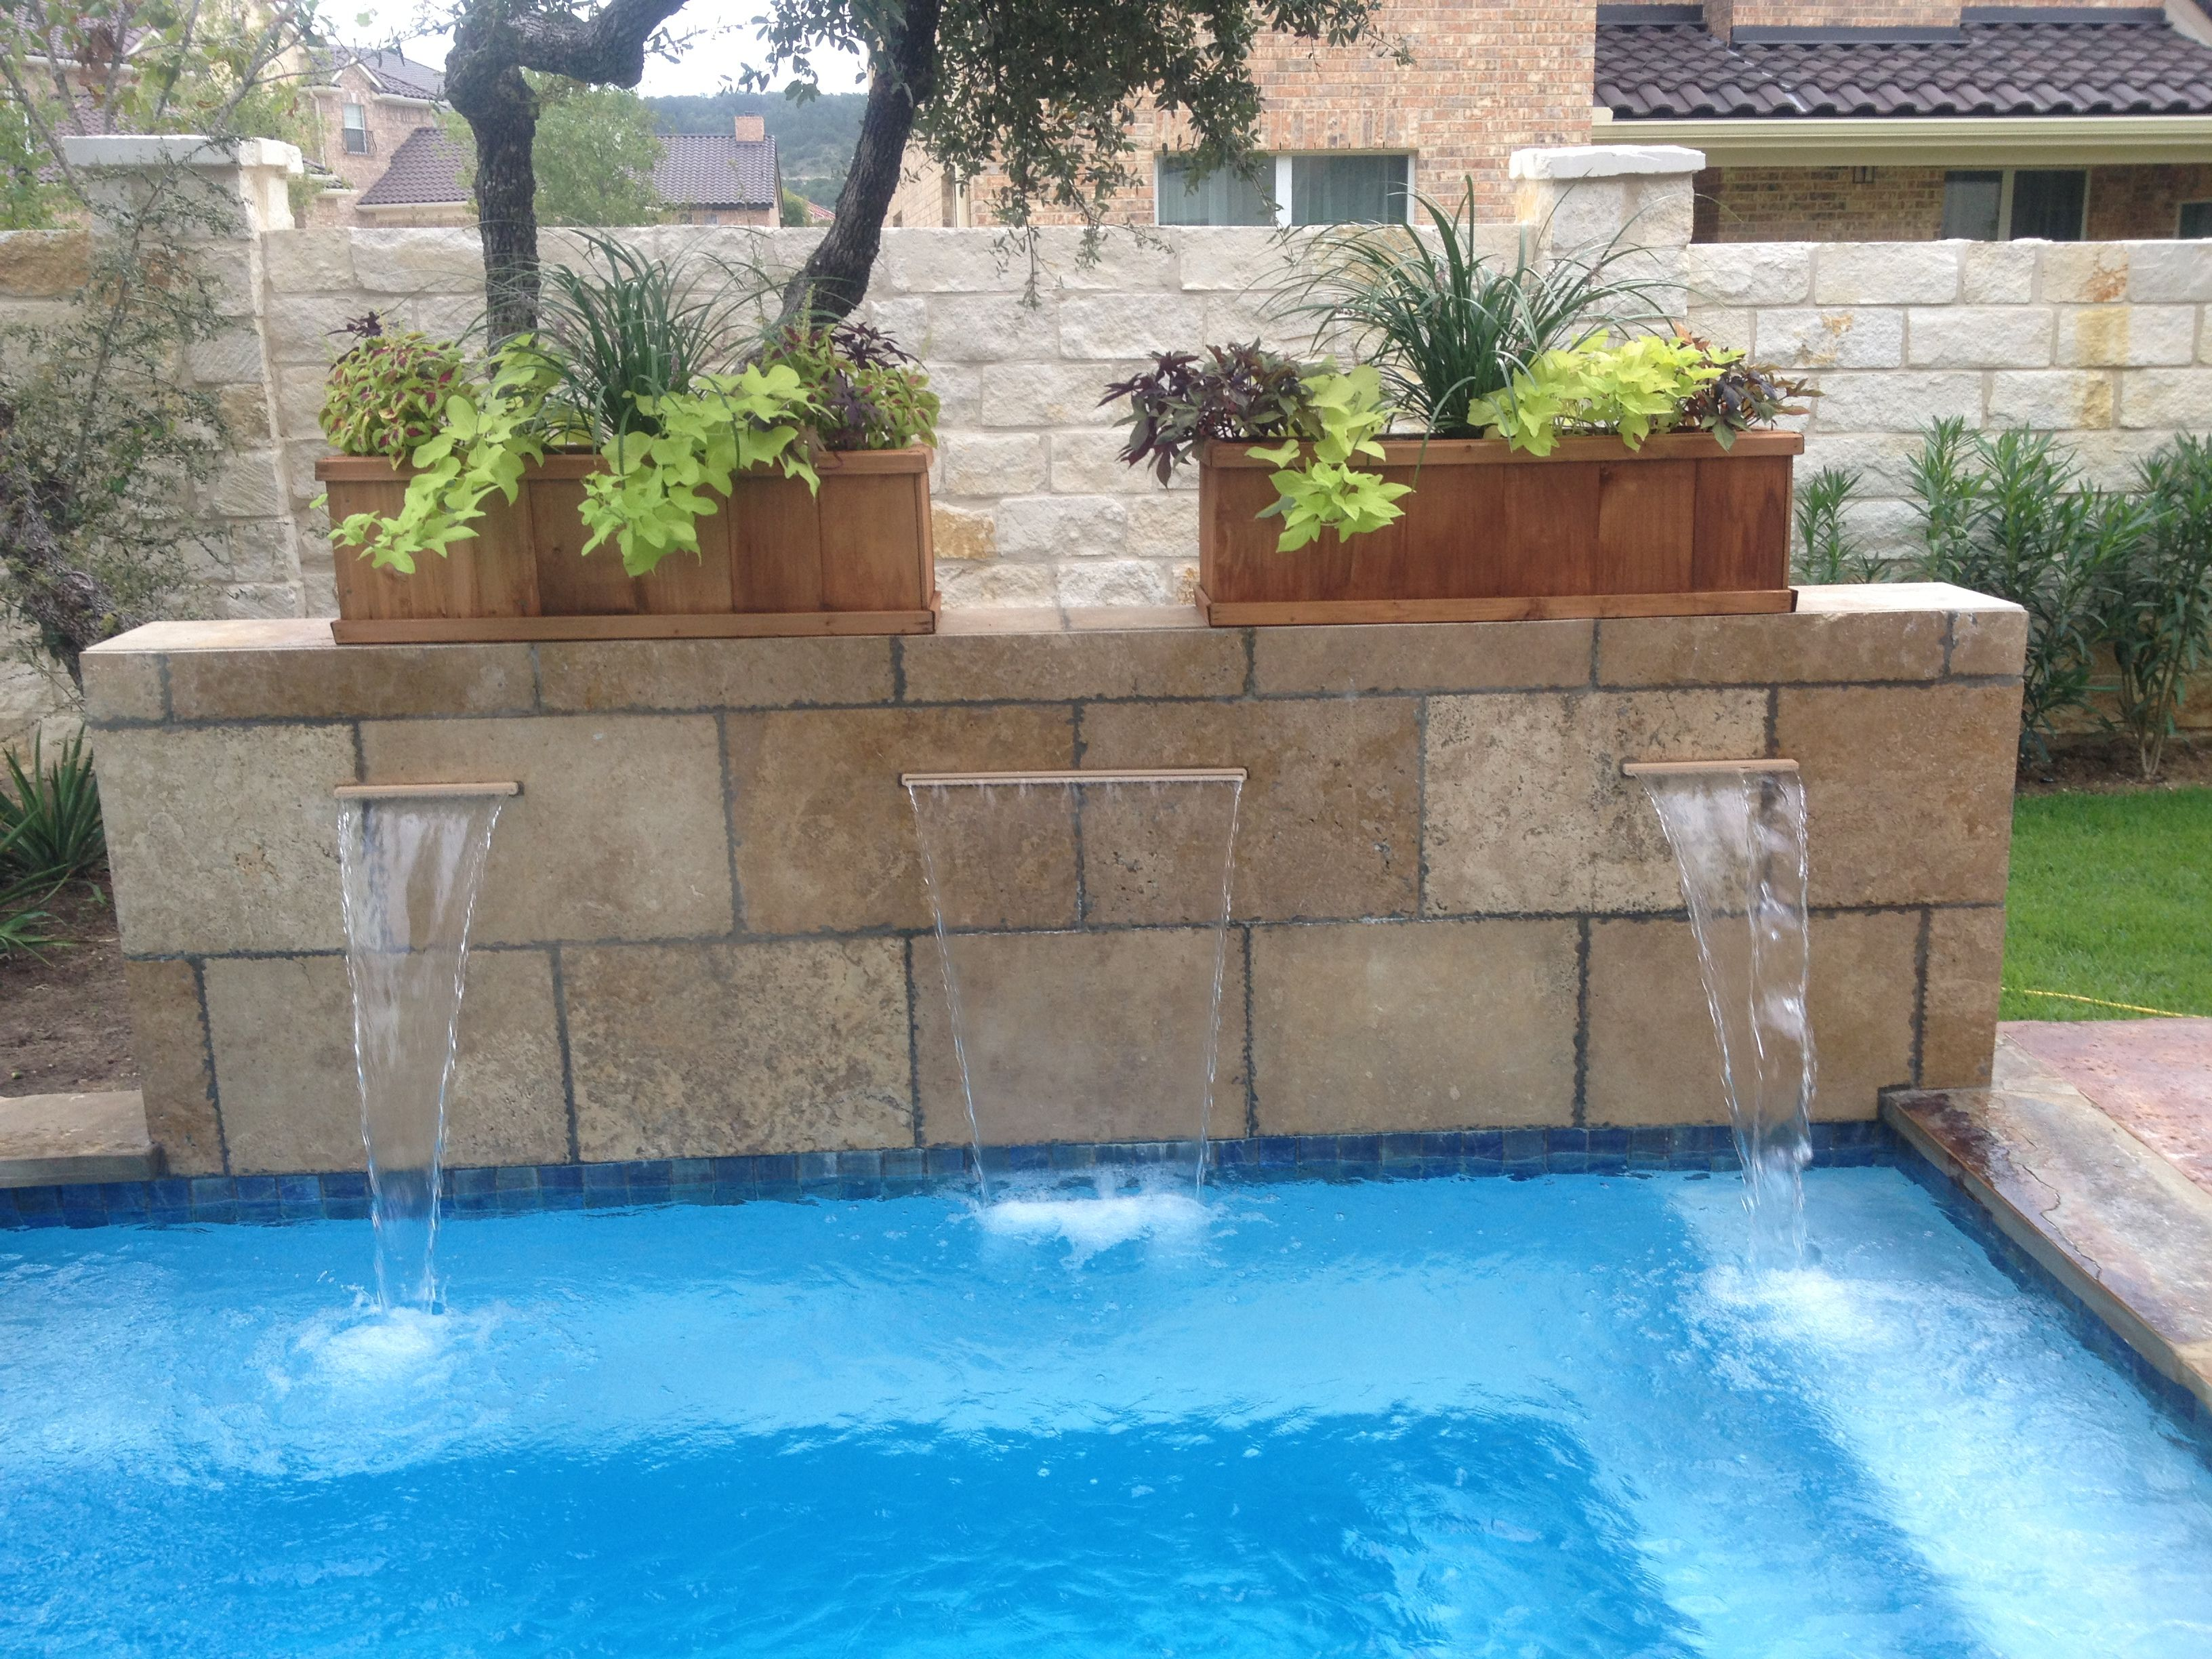 Travertine Tile Pool Travertine Tile Water Feature With Shear Dissentswood Duck